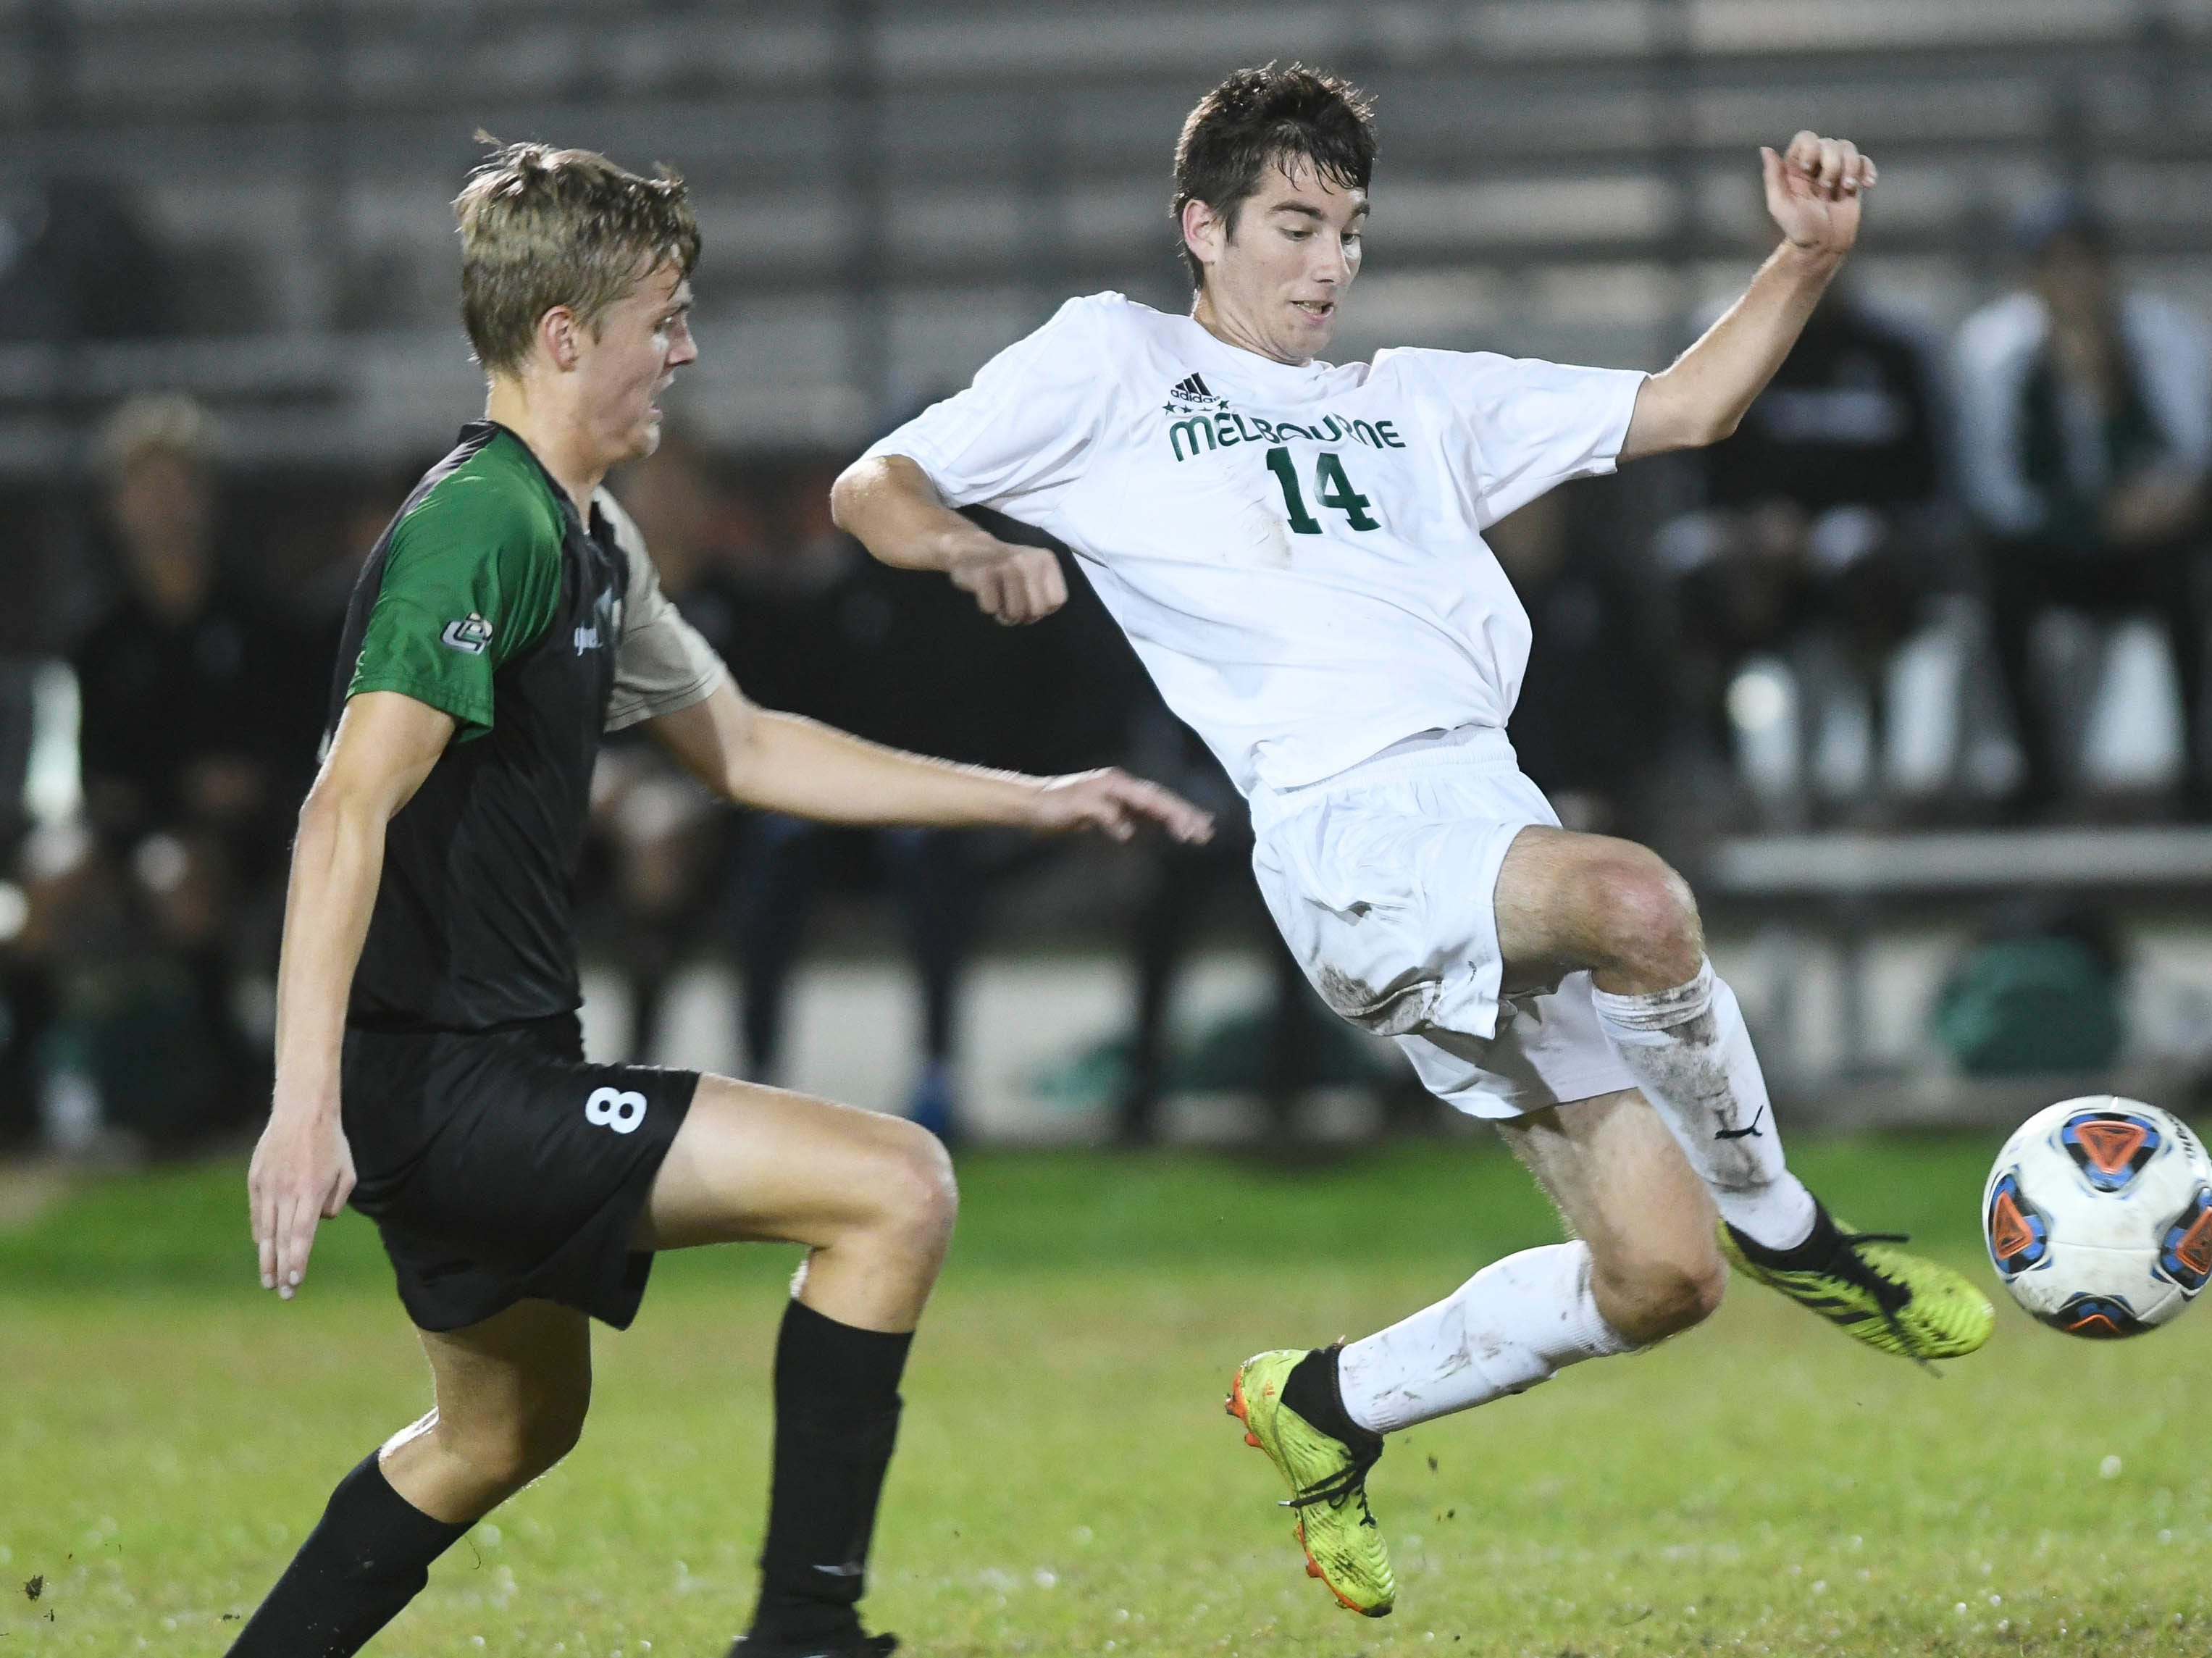 Melbourne's Dylan Barakat (14) drives the ball away from Mads Jensen of Viera during Friday's game at Viera High.